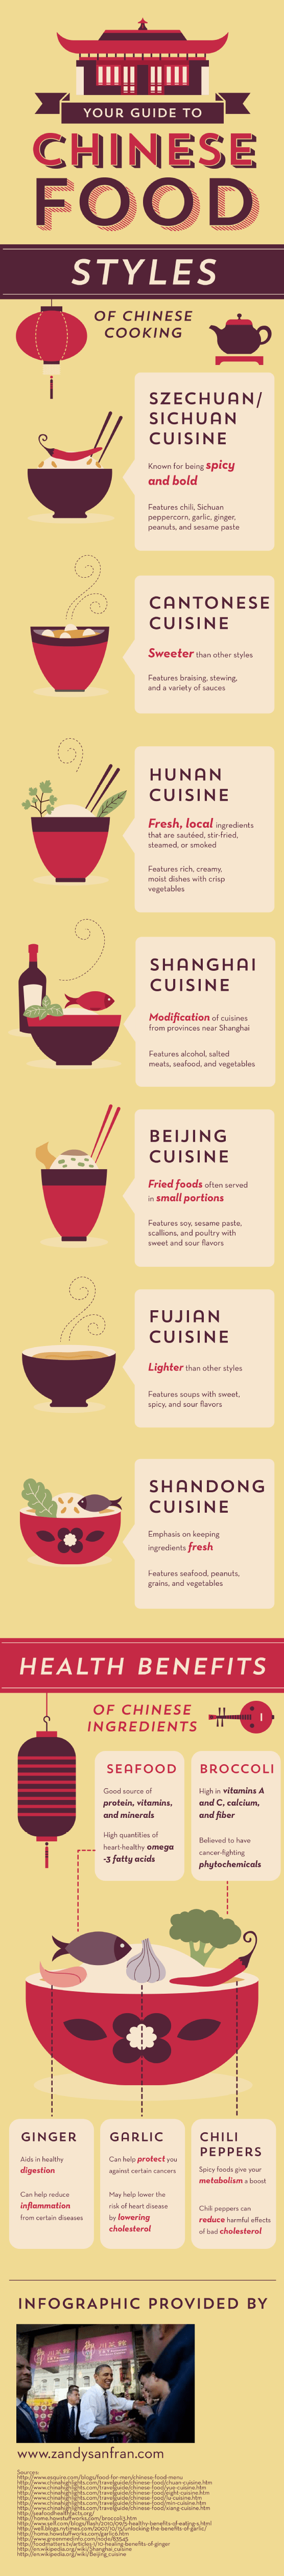 Cuisines Explained Chinese Food Styles Seven Chinese Cuisines Explained